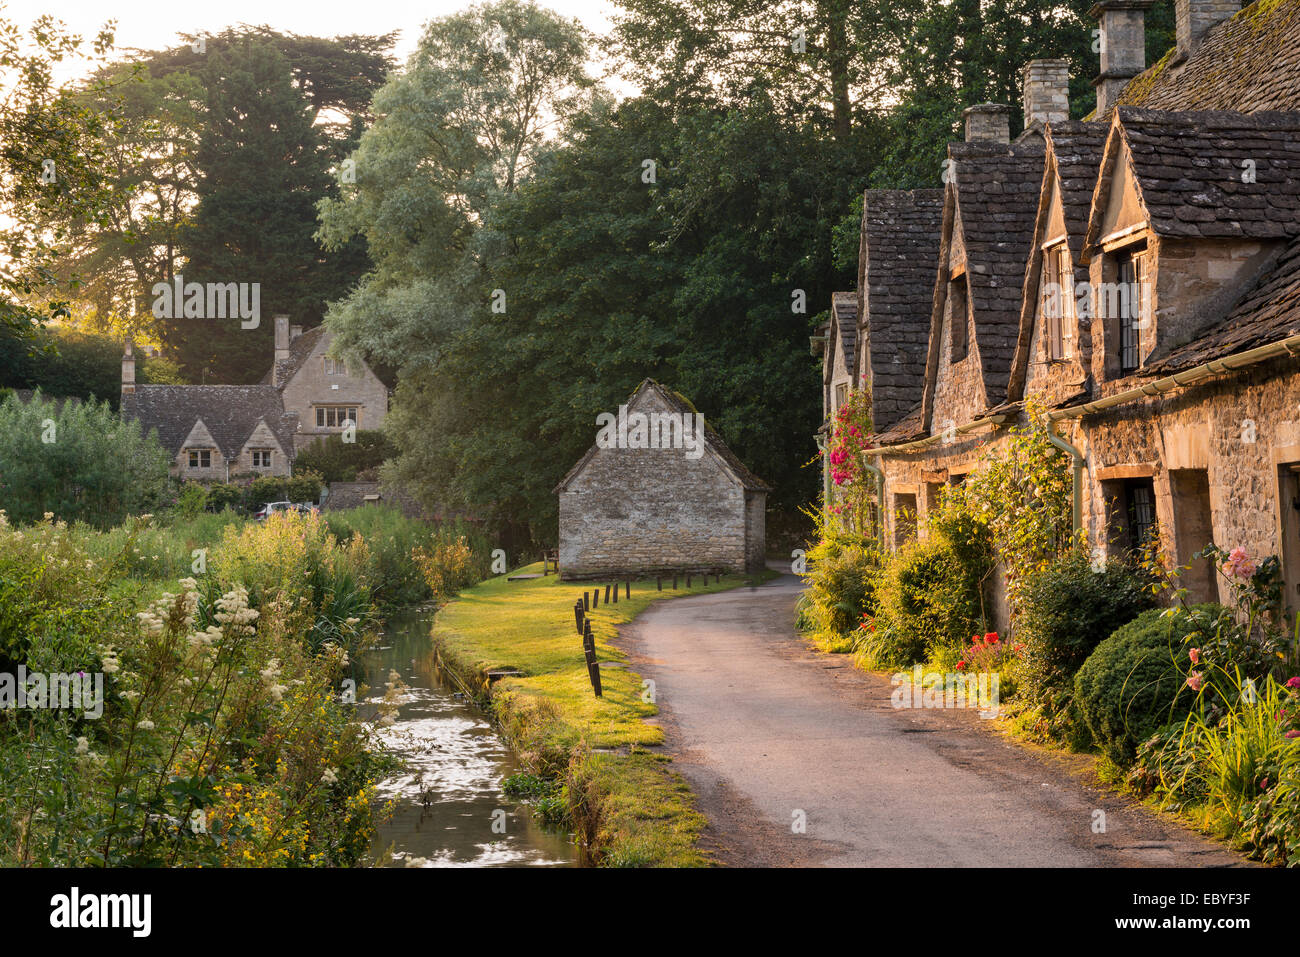 Picturesque cottages at Arlington Row in the Cotswolds village of Bibury, Gloucestershire, England. Summer (July) - Stock Image